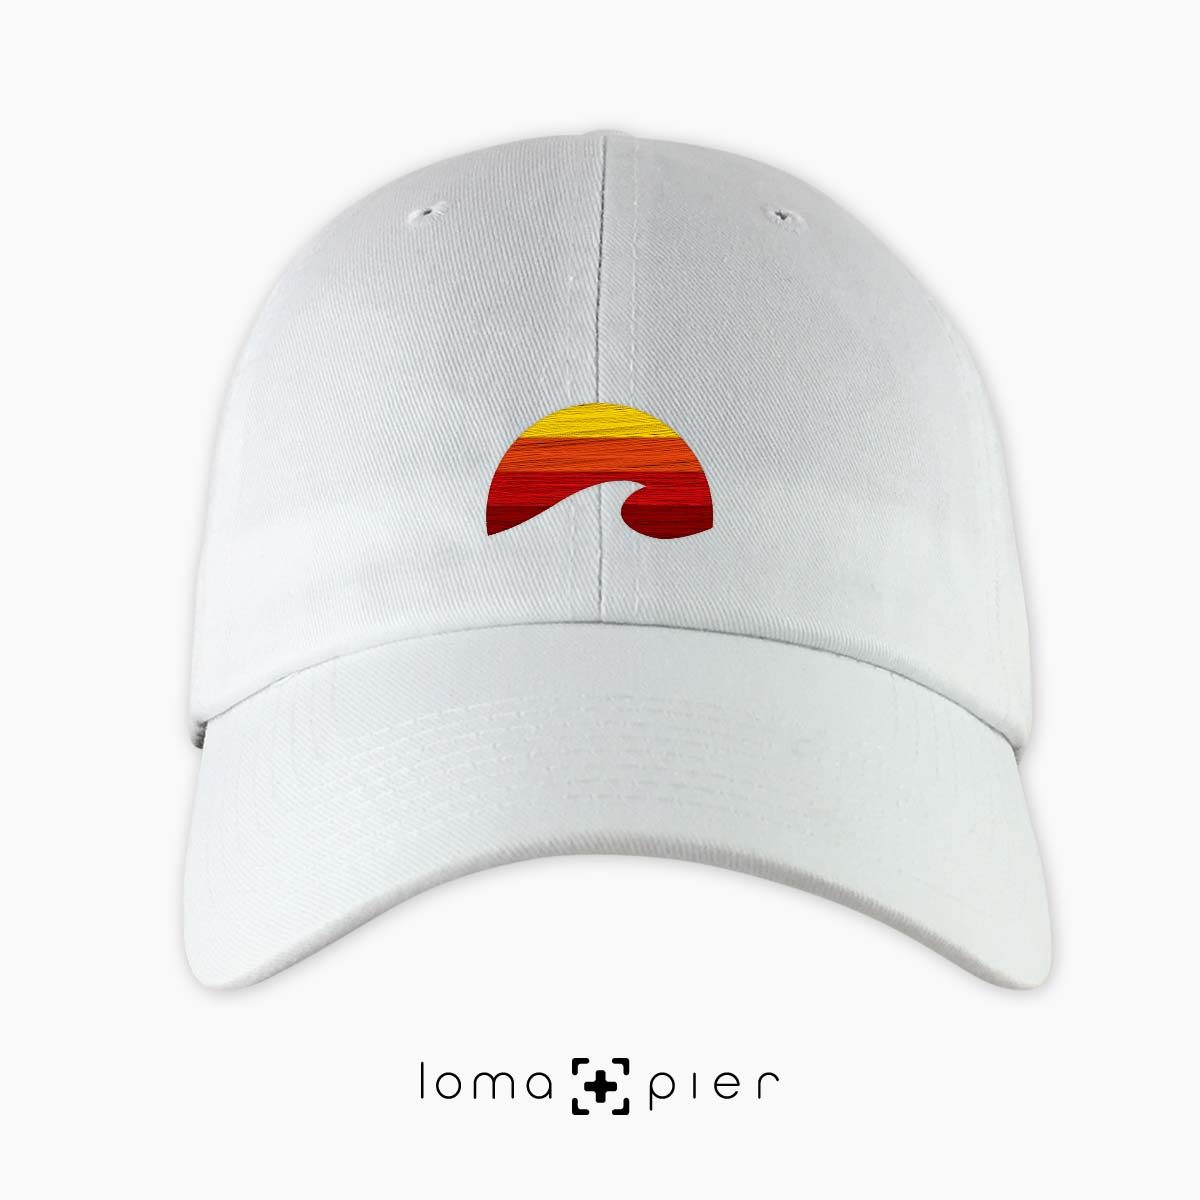 PACIFIC SUN icon embroidered on a white dad hat by loma+pier hat store made in the USA